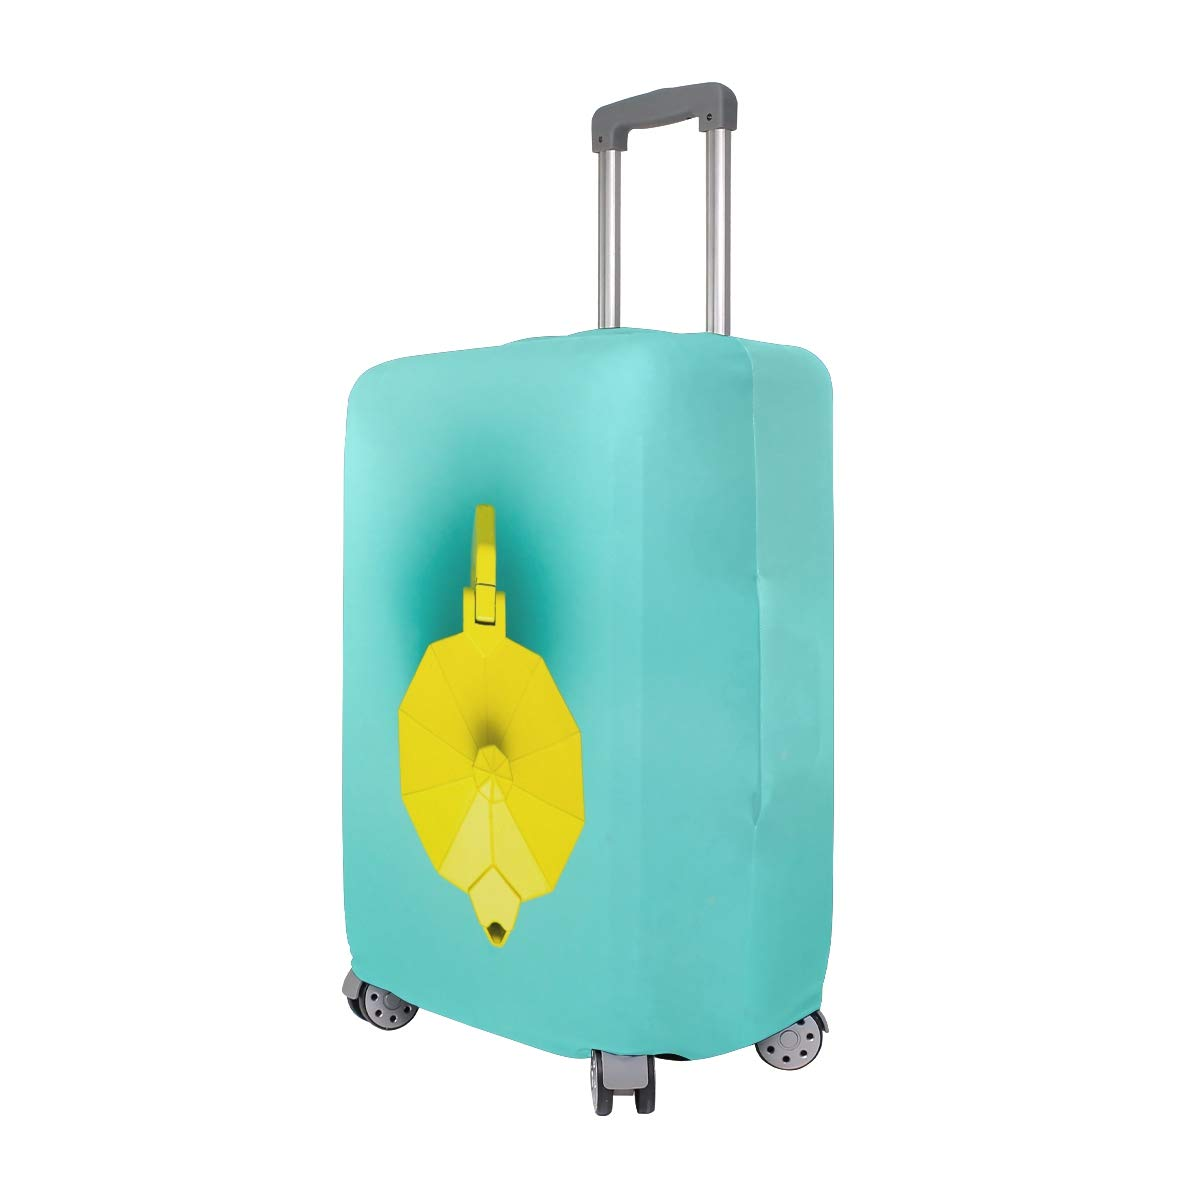 Travel Luggage Cover Color Yellow Teapot Art Suitcase Protector Fits 18-20 Inch Washable Baggage Covers